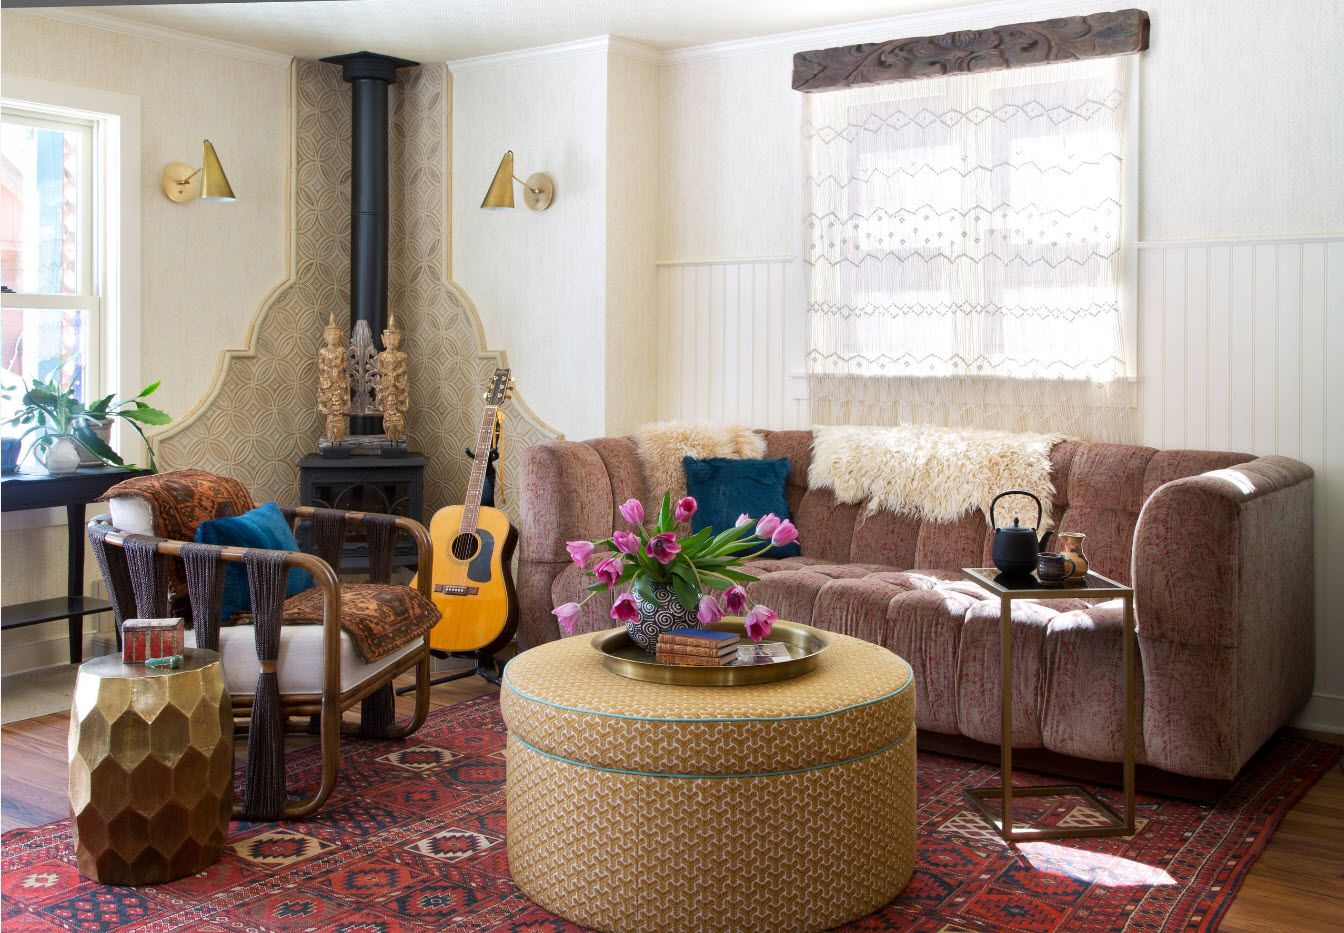 Sitting room 2017: Modern Novelties, Design Trends, Real Photo Examples. Round ottoman coffee table in the center